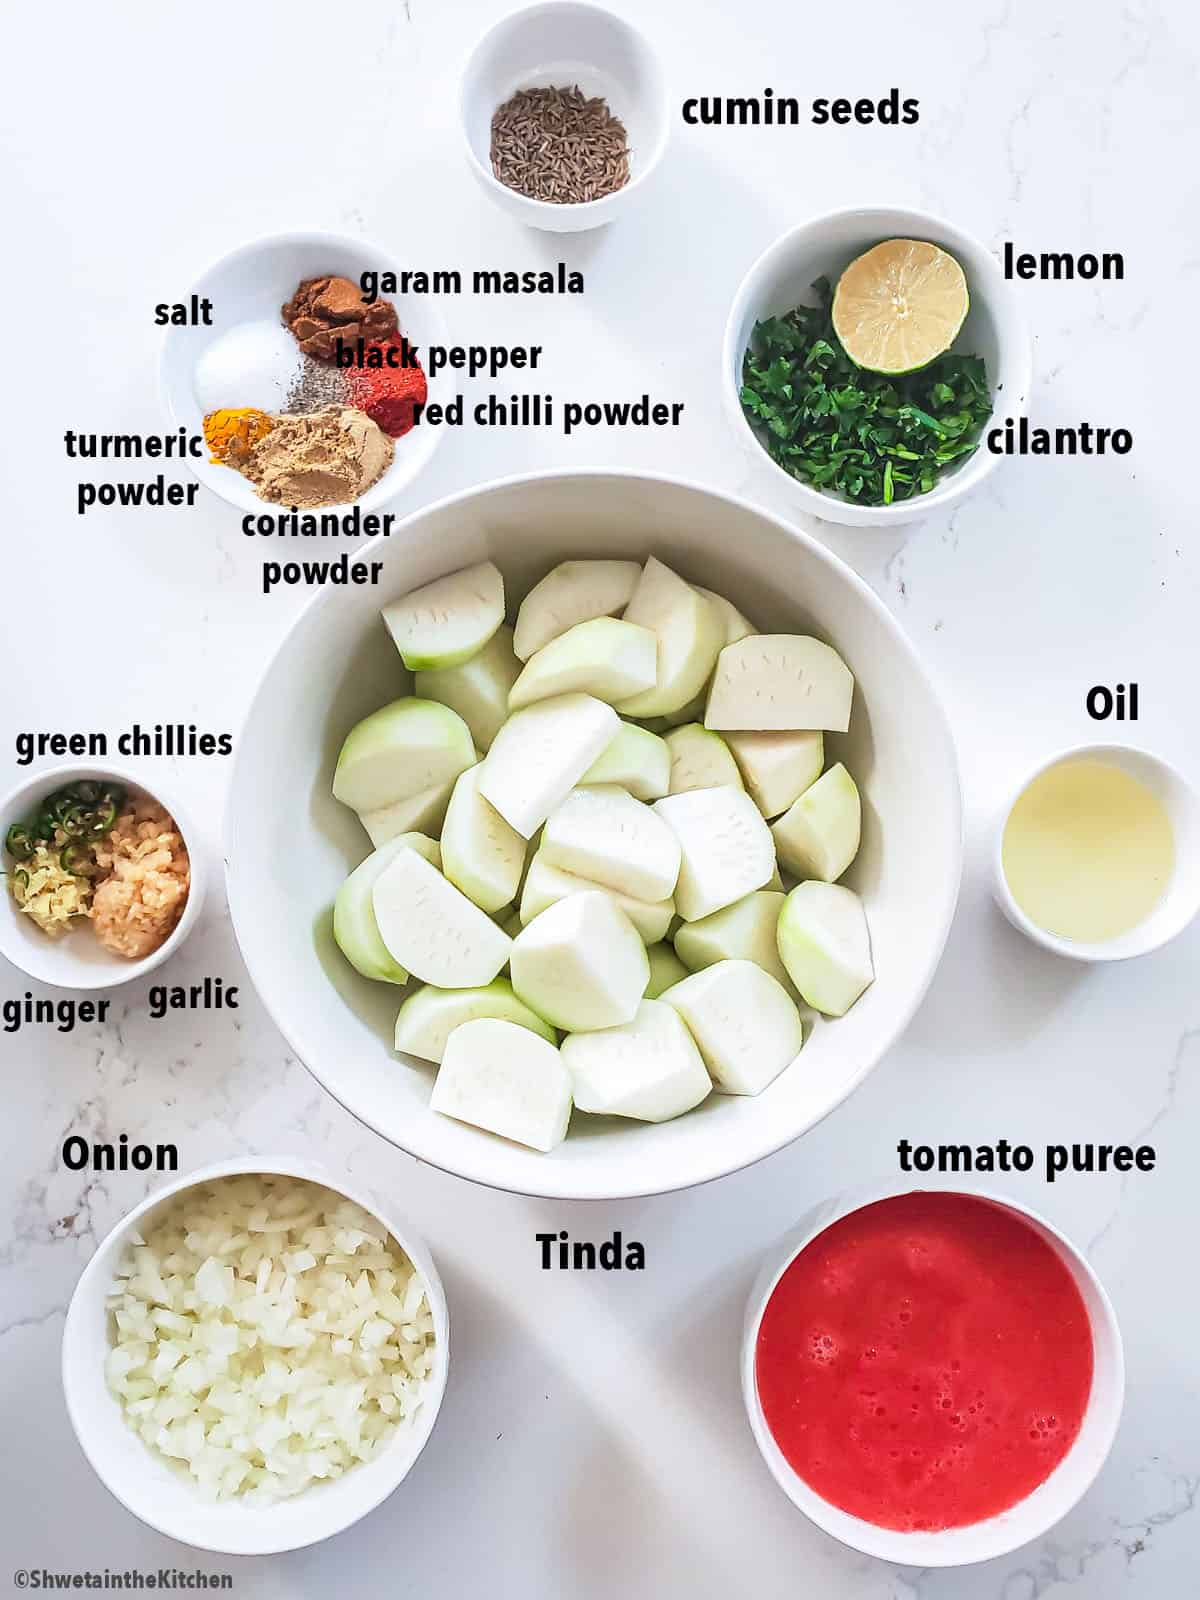 top view of Punjabi Tinda curry ingredients placed in bowls on white surface